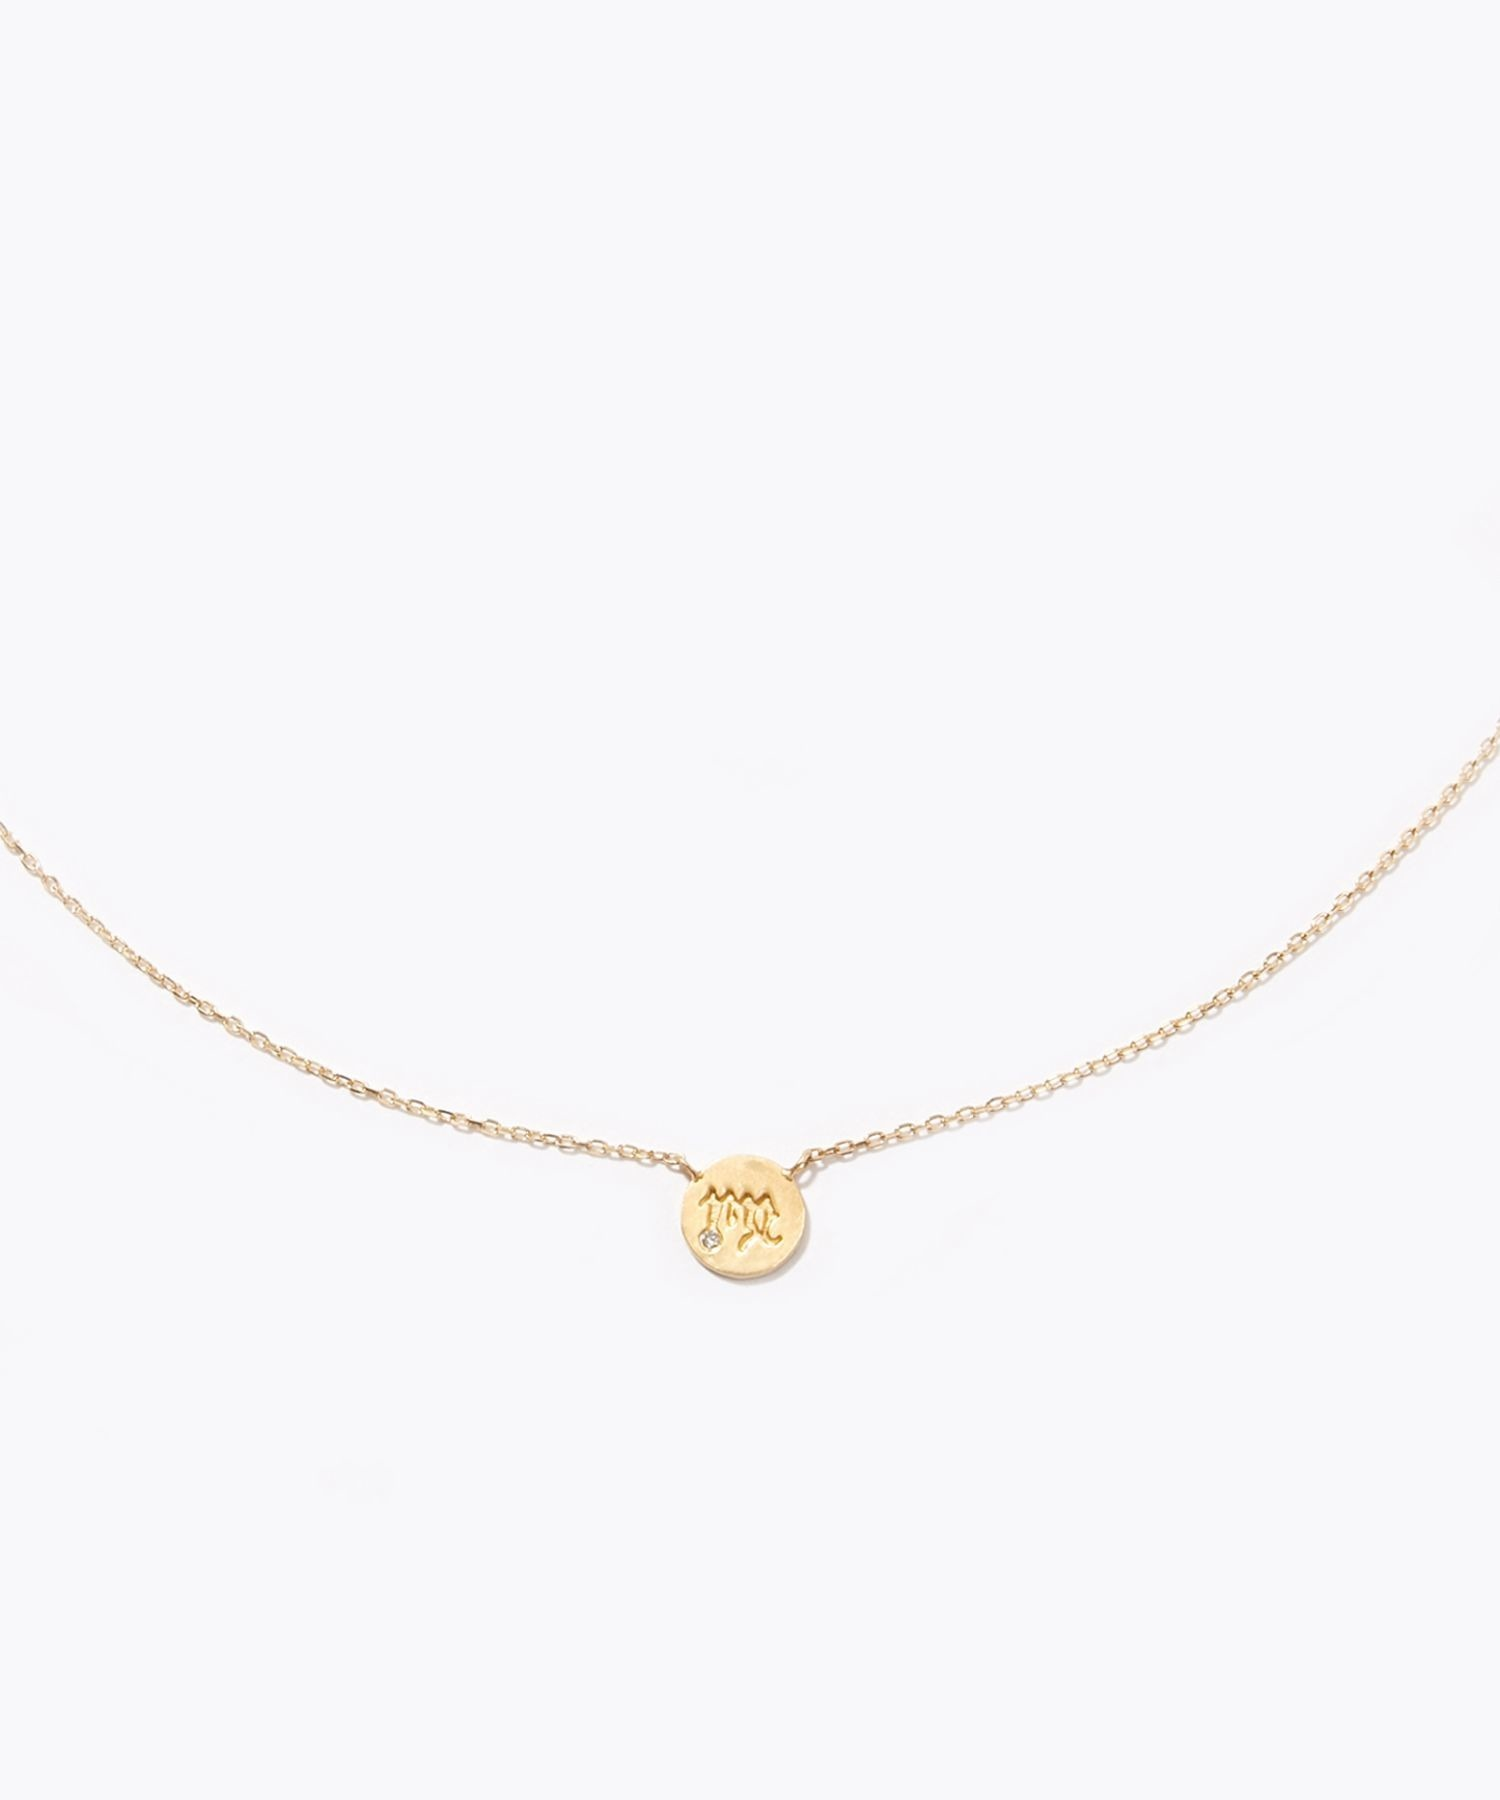 [constellation] Virgo K10 diamond petit medal necklace